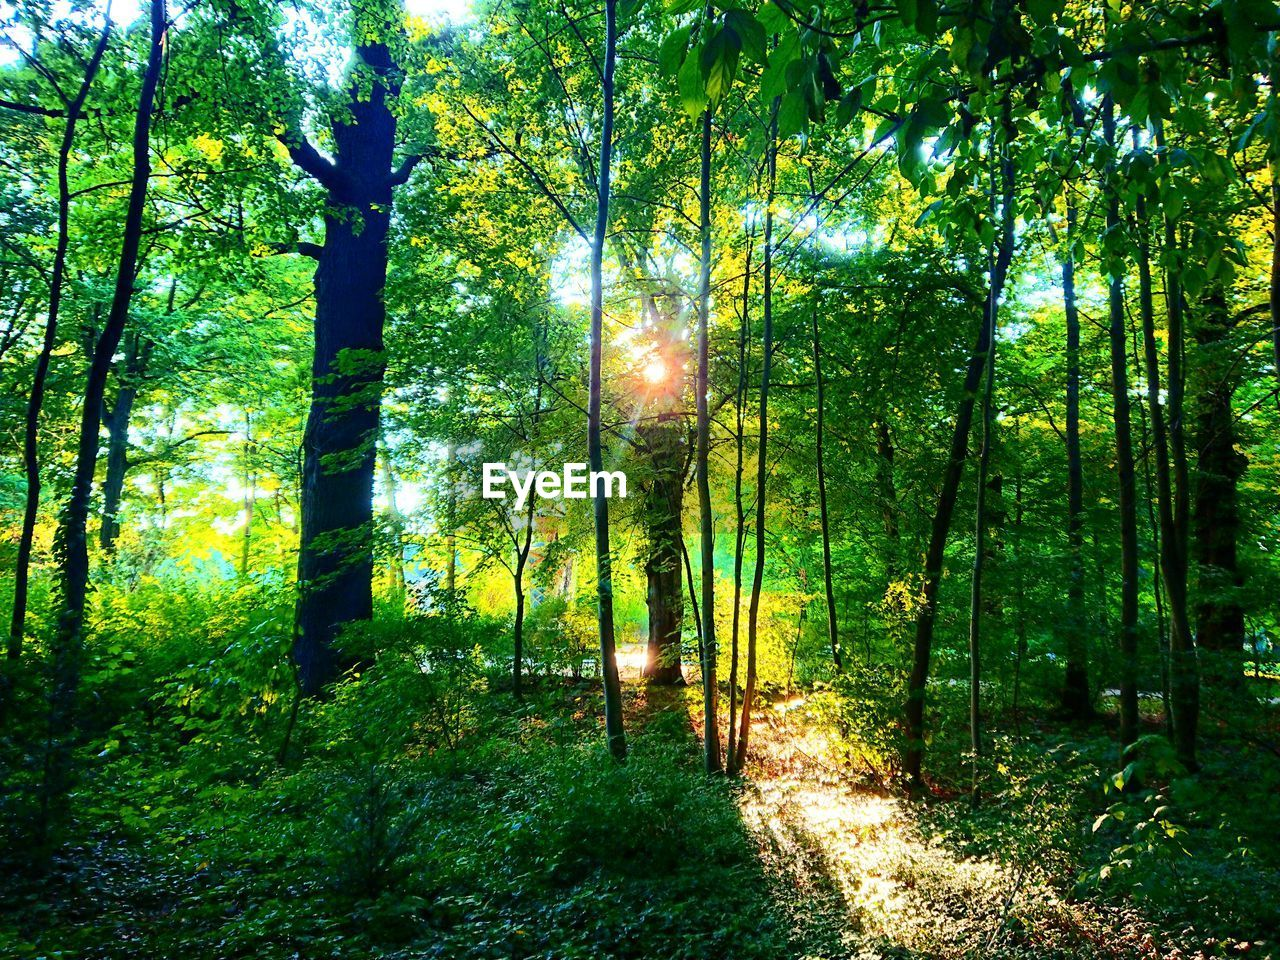 forest, tree, nature, tranquility, growth, tranquil scene, beauty in nature, scenics, no people, outdoors, day, landscape